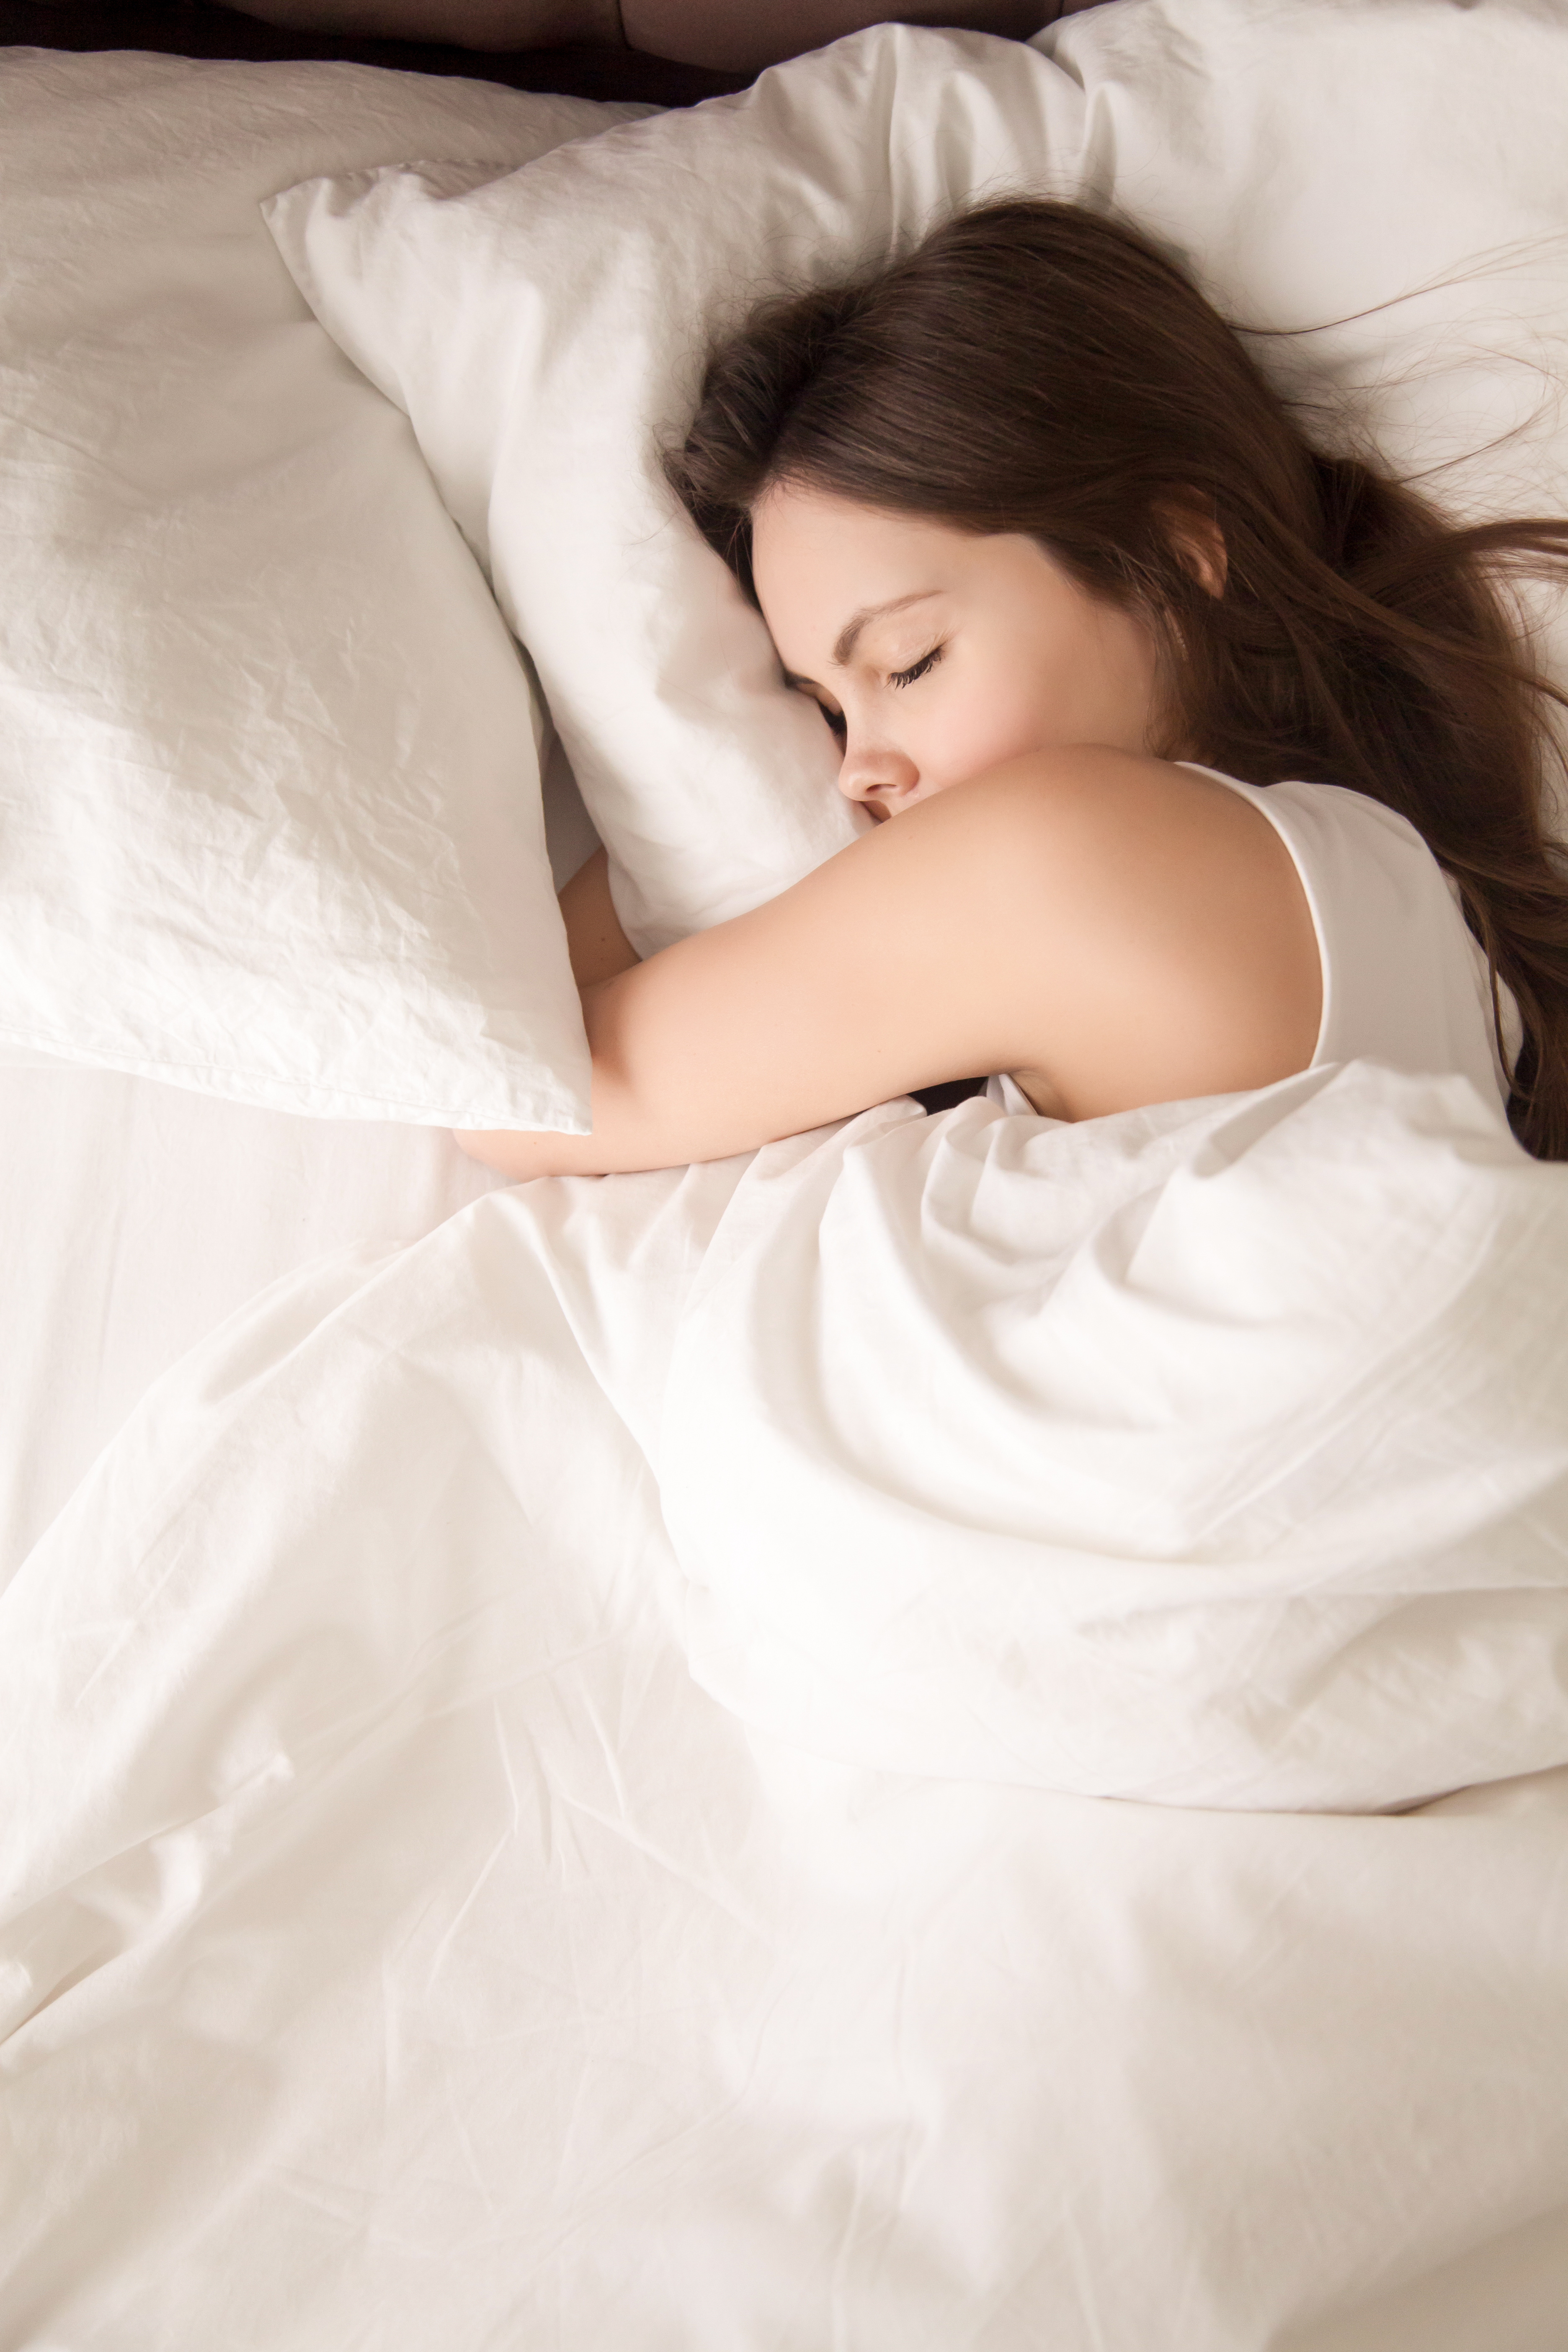 Top tips for improving your sleep